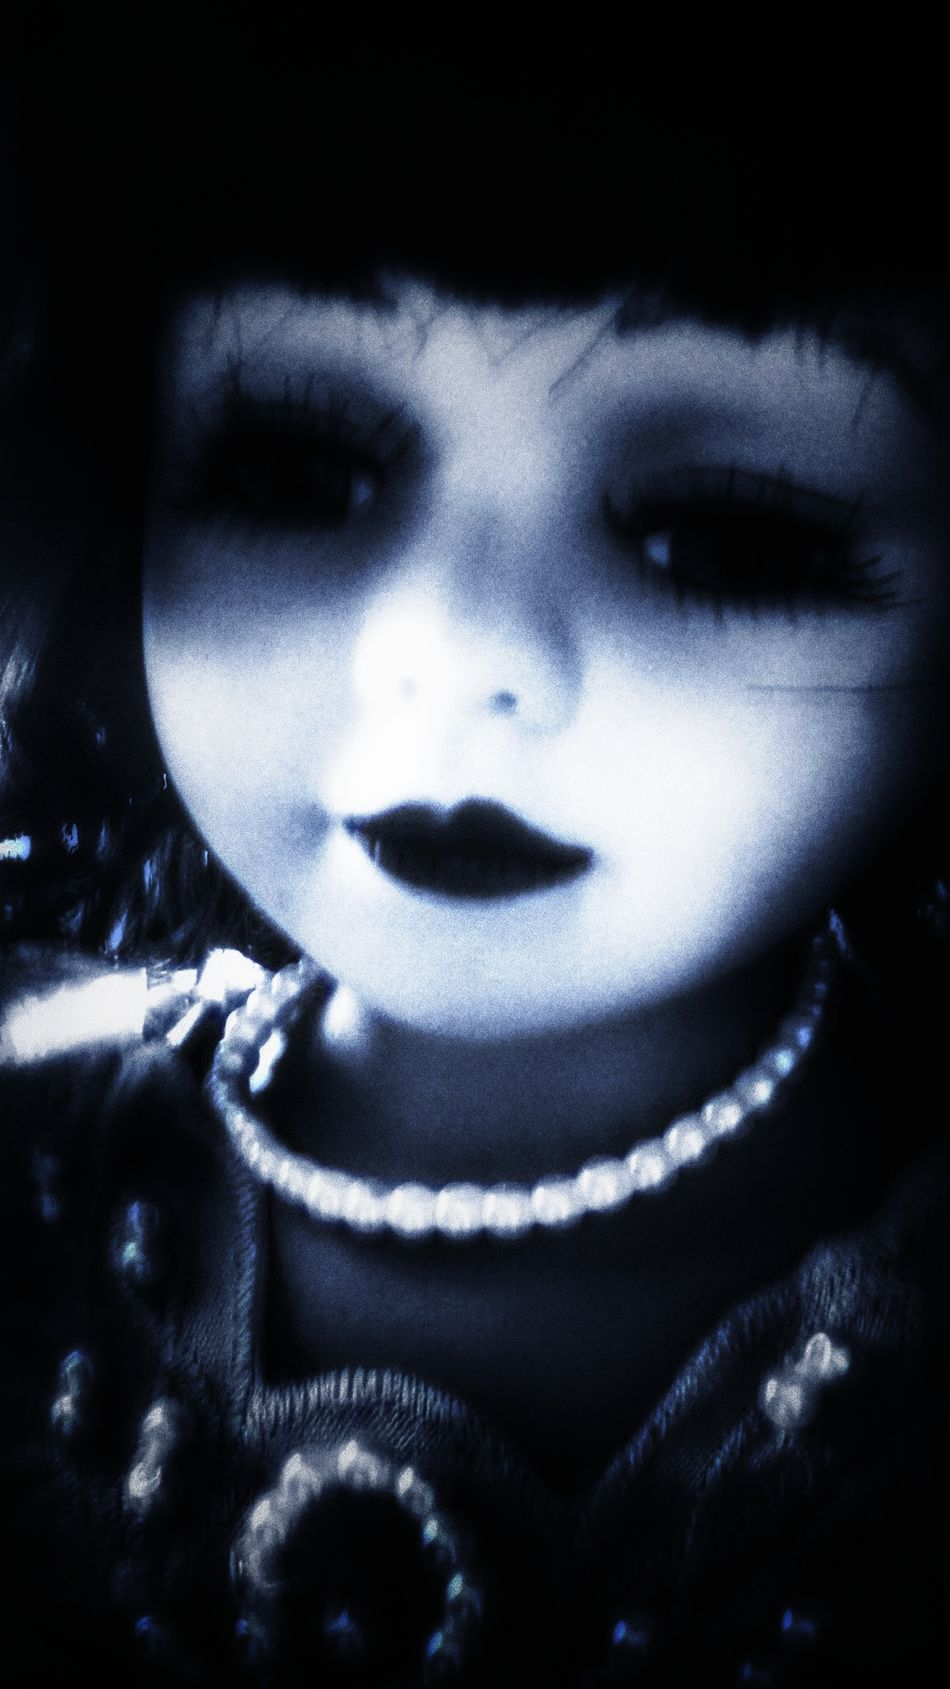 https://youtu.be/WcE2if76hoc The Impurist Nightmares And Dreamscapes American Horror Story Black And Blue Creepy Doll The Darkness Within Musical Photos For The Love Of Black And White